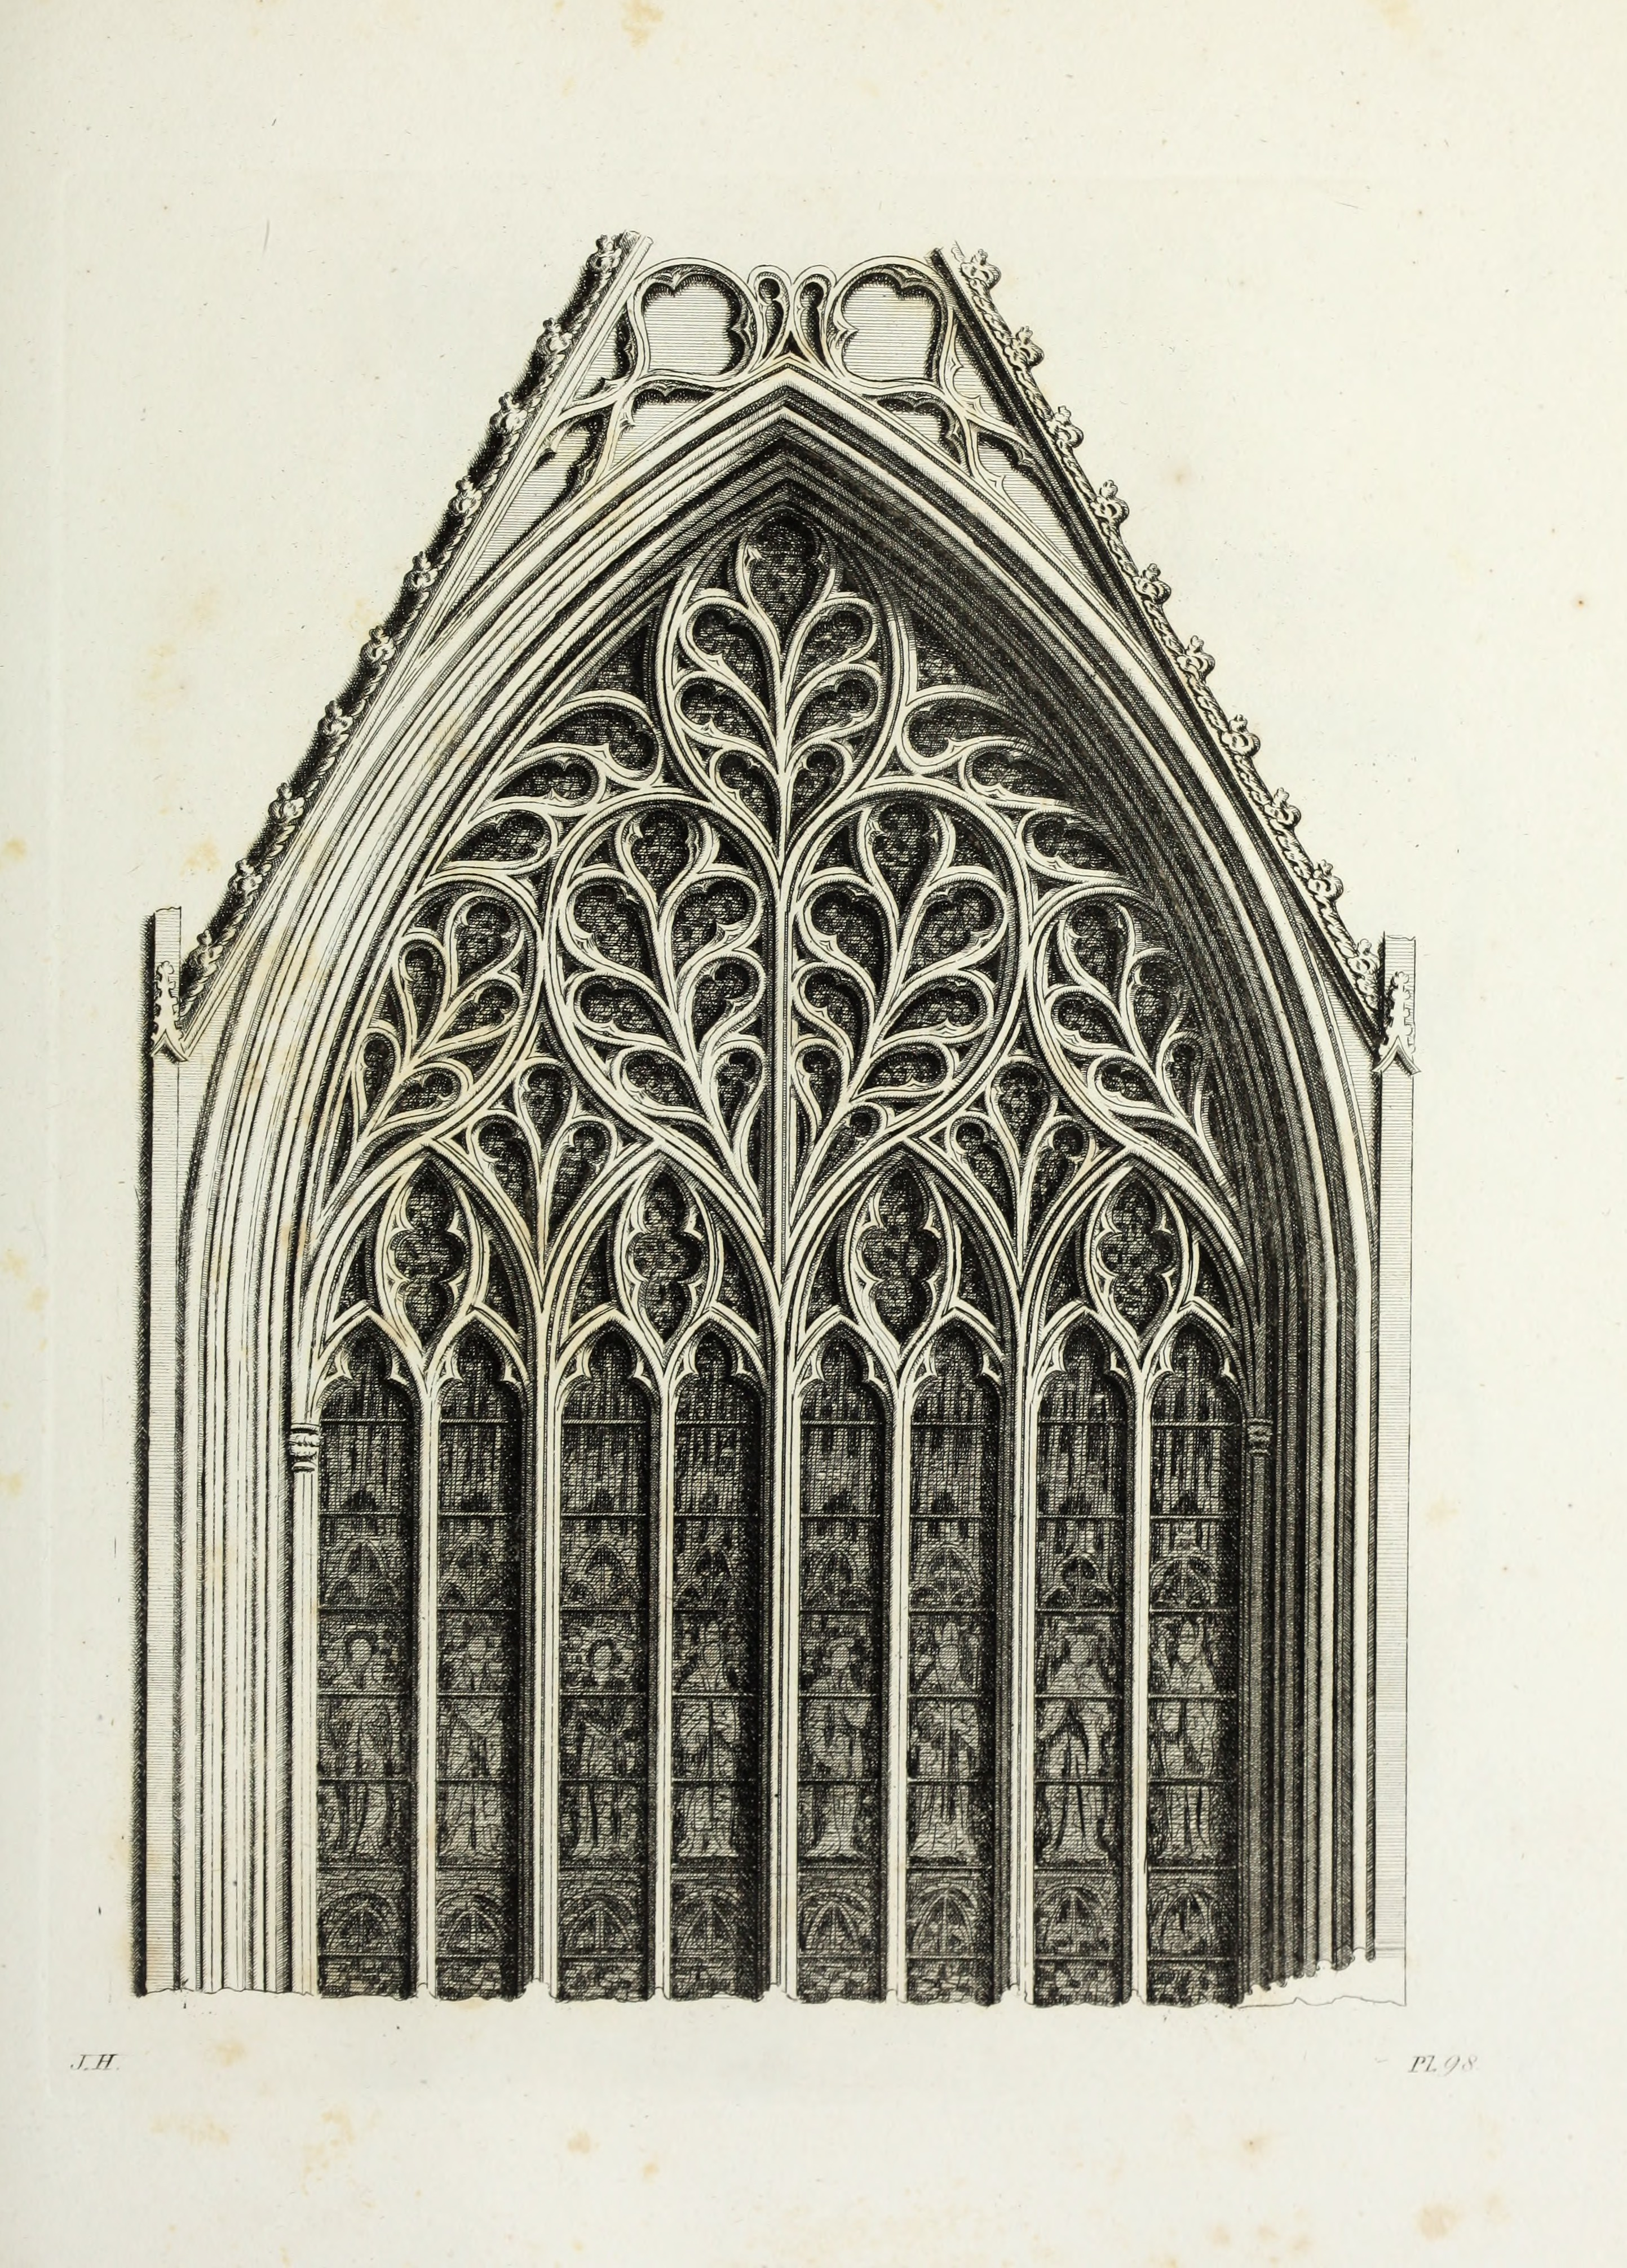 FileGothic Ornaments In The Cathedral Church Of York 1795 14783189175